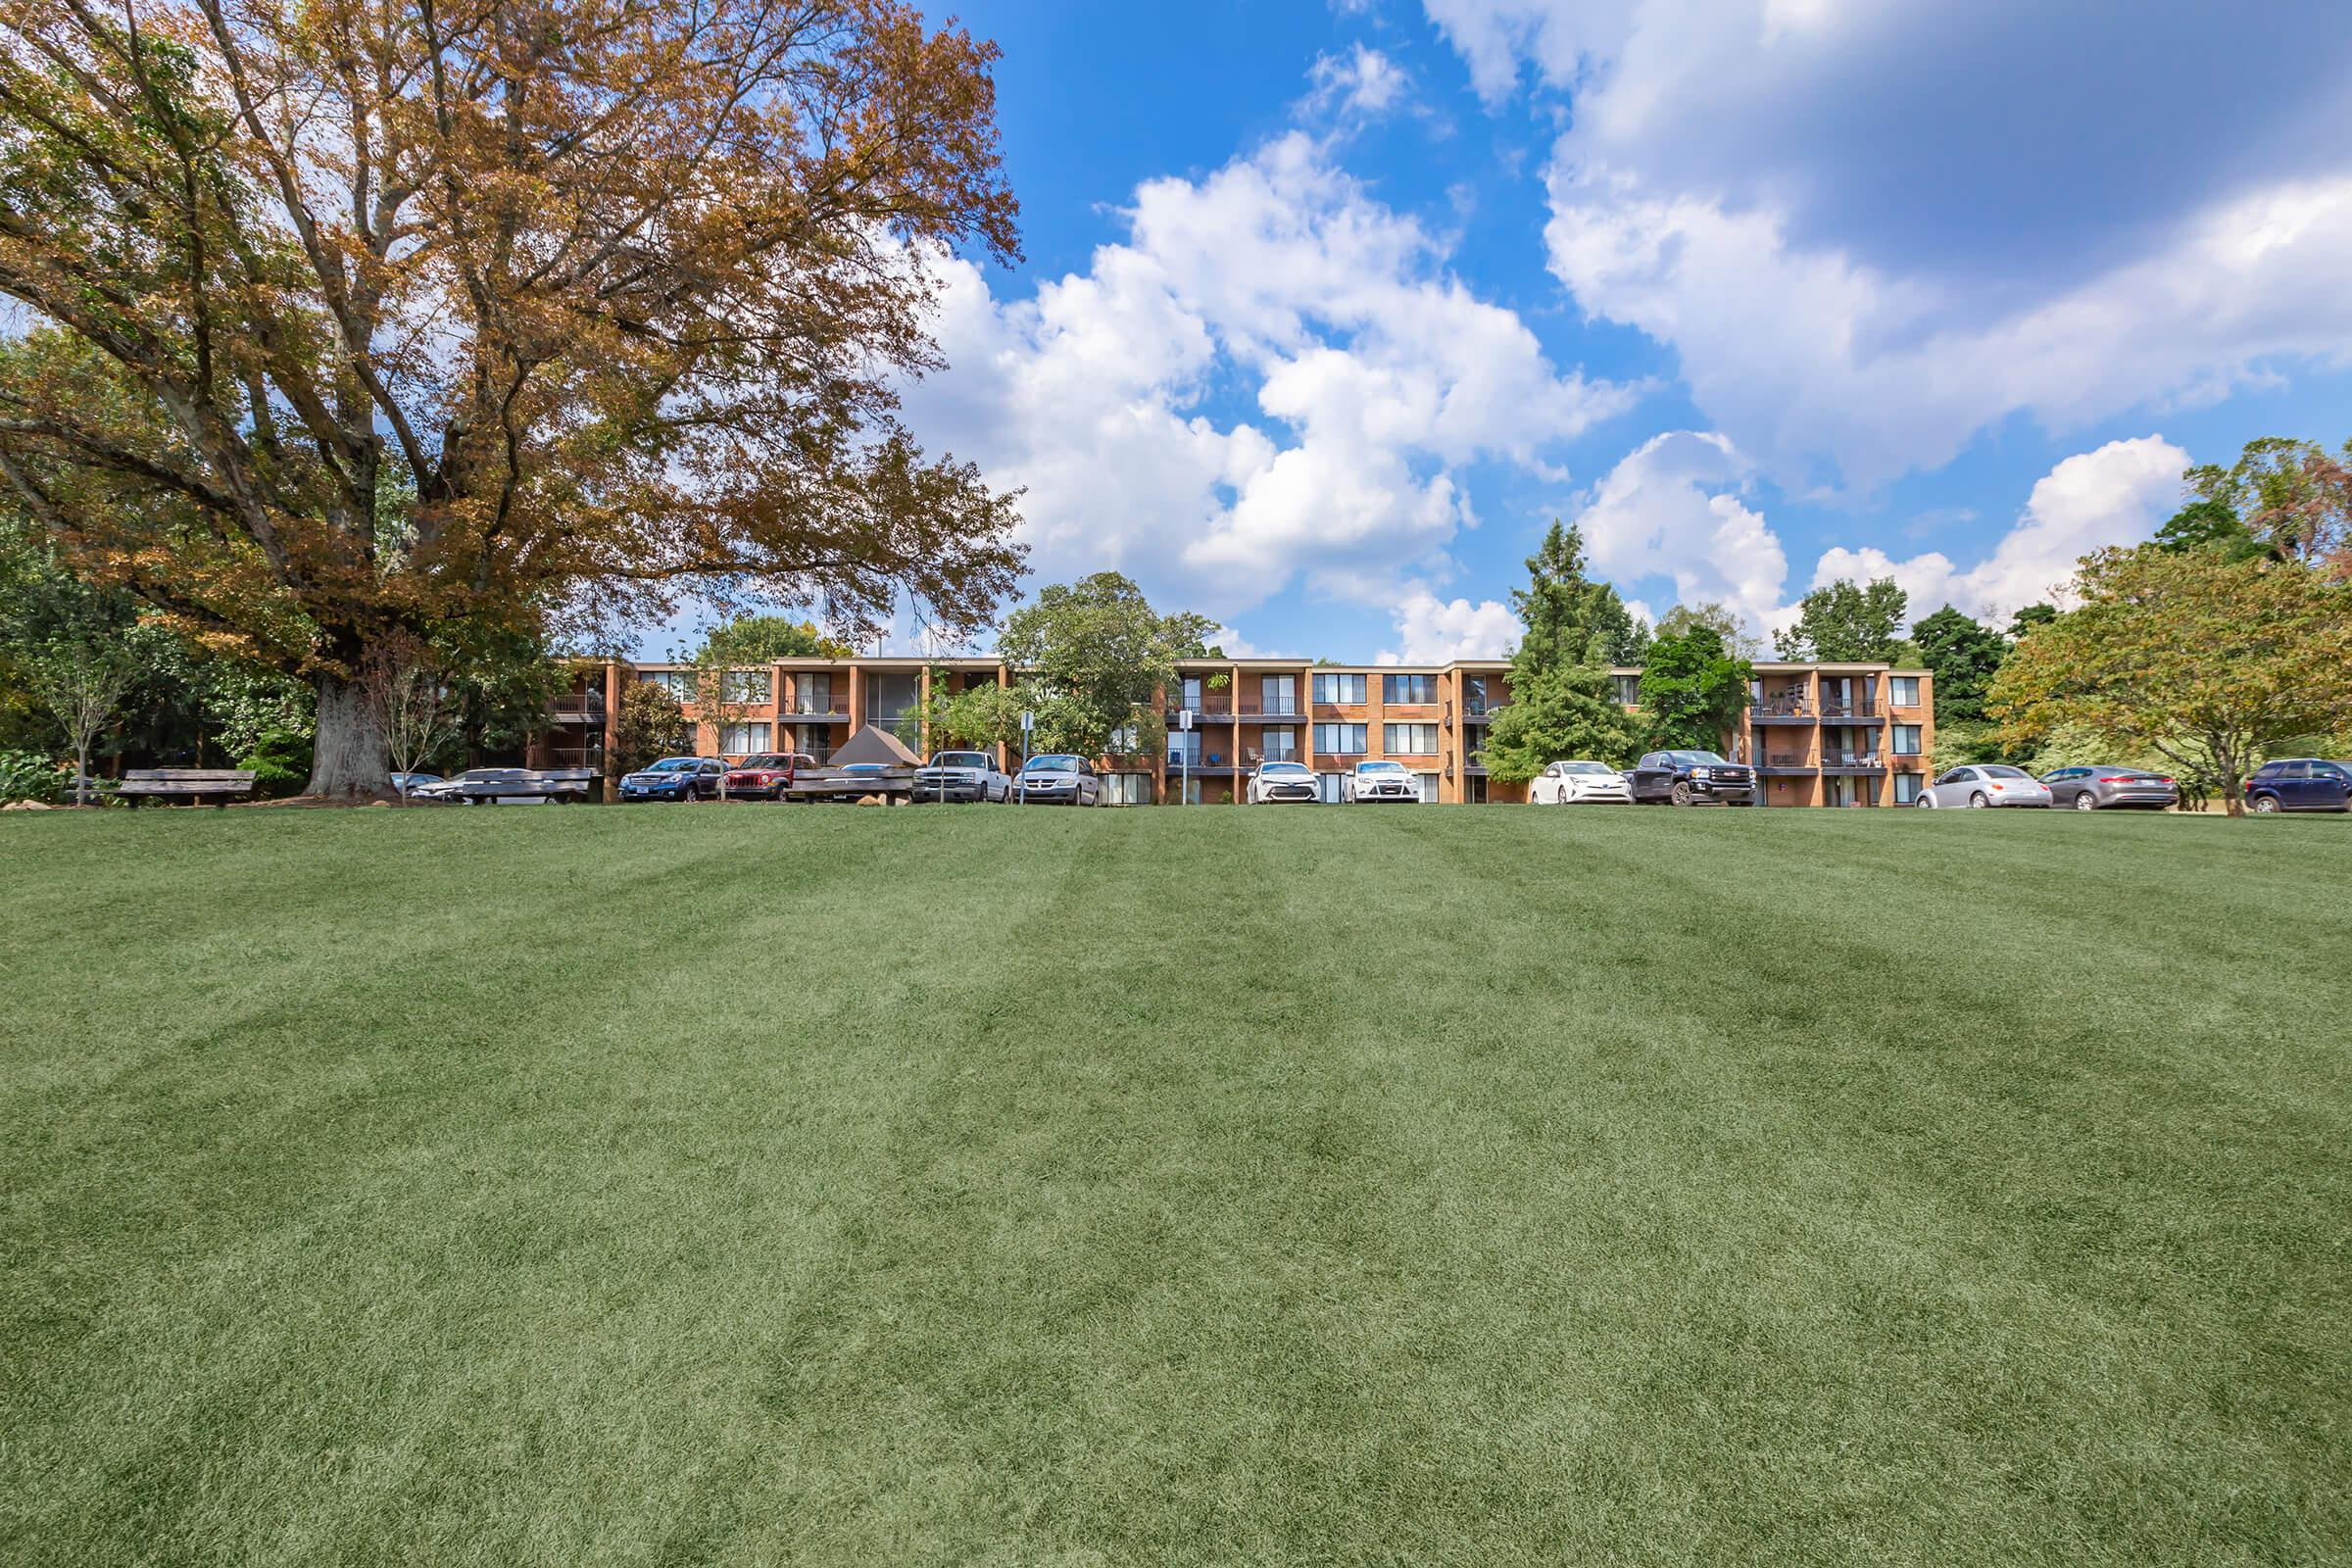 1 AND 2 BEDROOM APARTMENTS FOR RENT IN KNOXVILLE, TENNESSEE